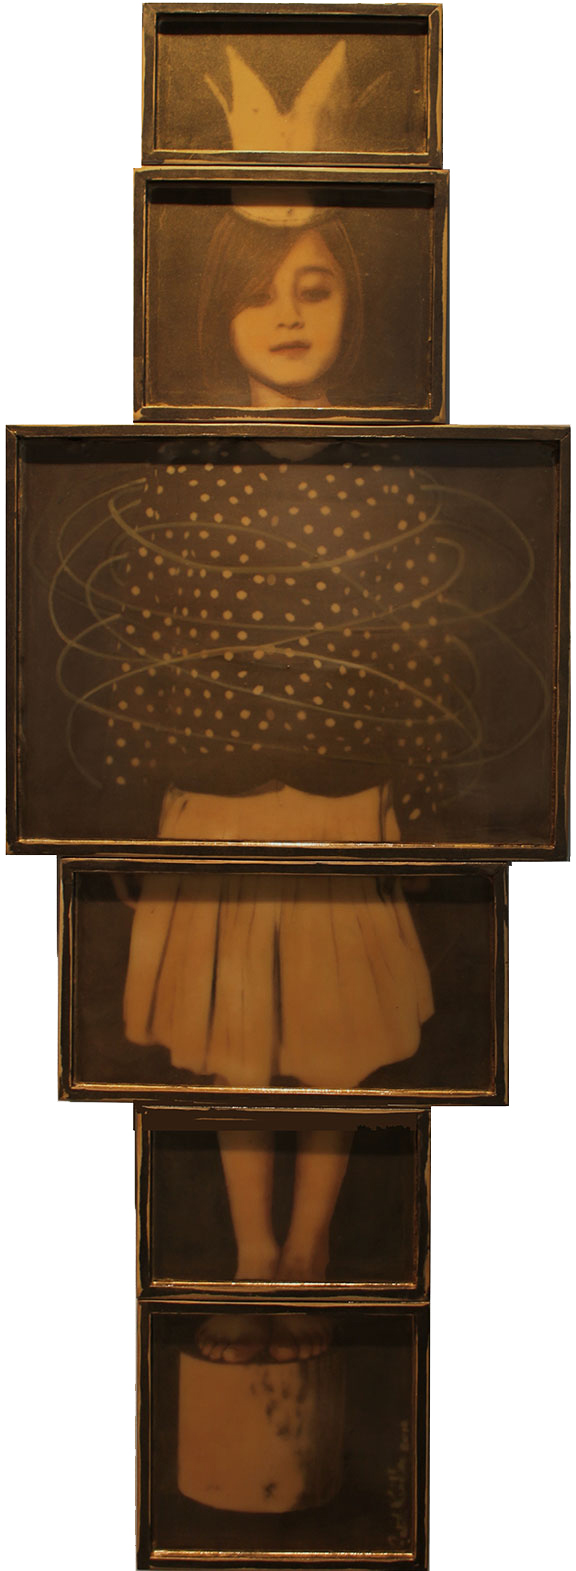 "Crowned Girl, 6 panels, 2012, 72""x25"", Mixed Media/Rubber (Samantha) (sold)"